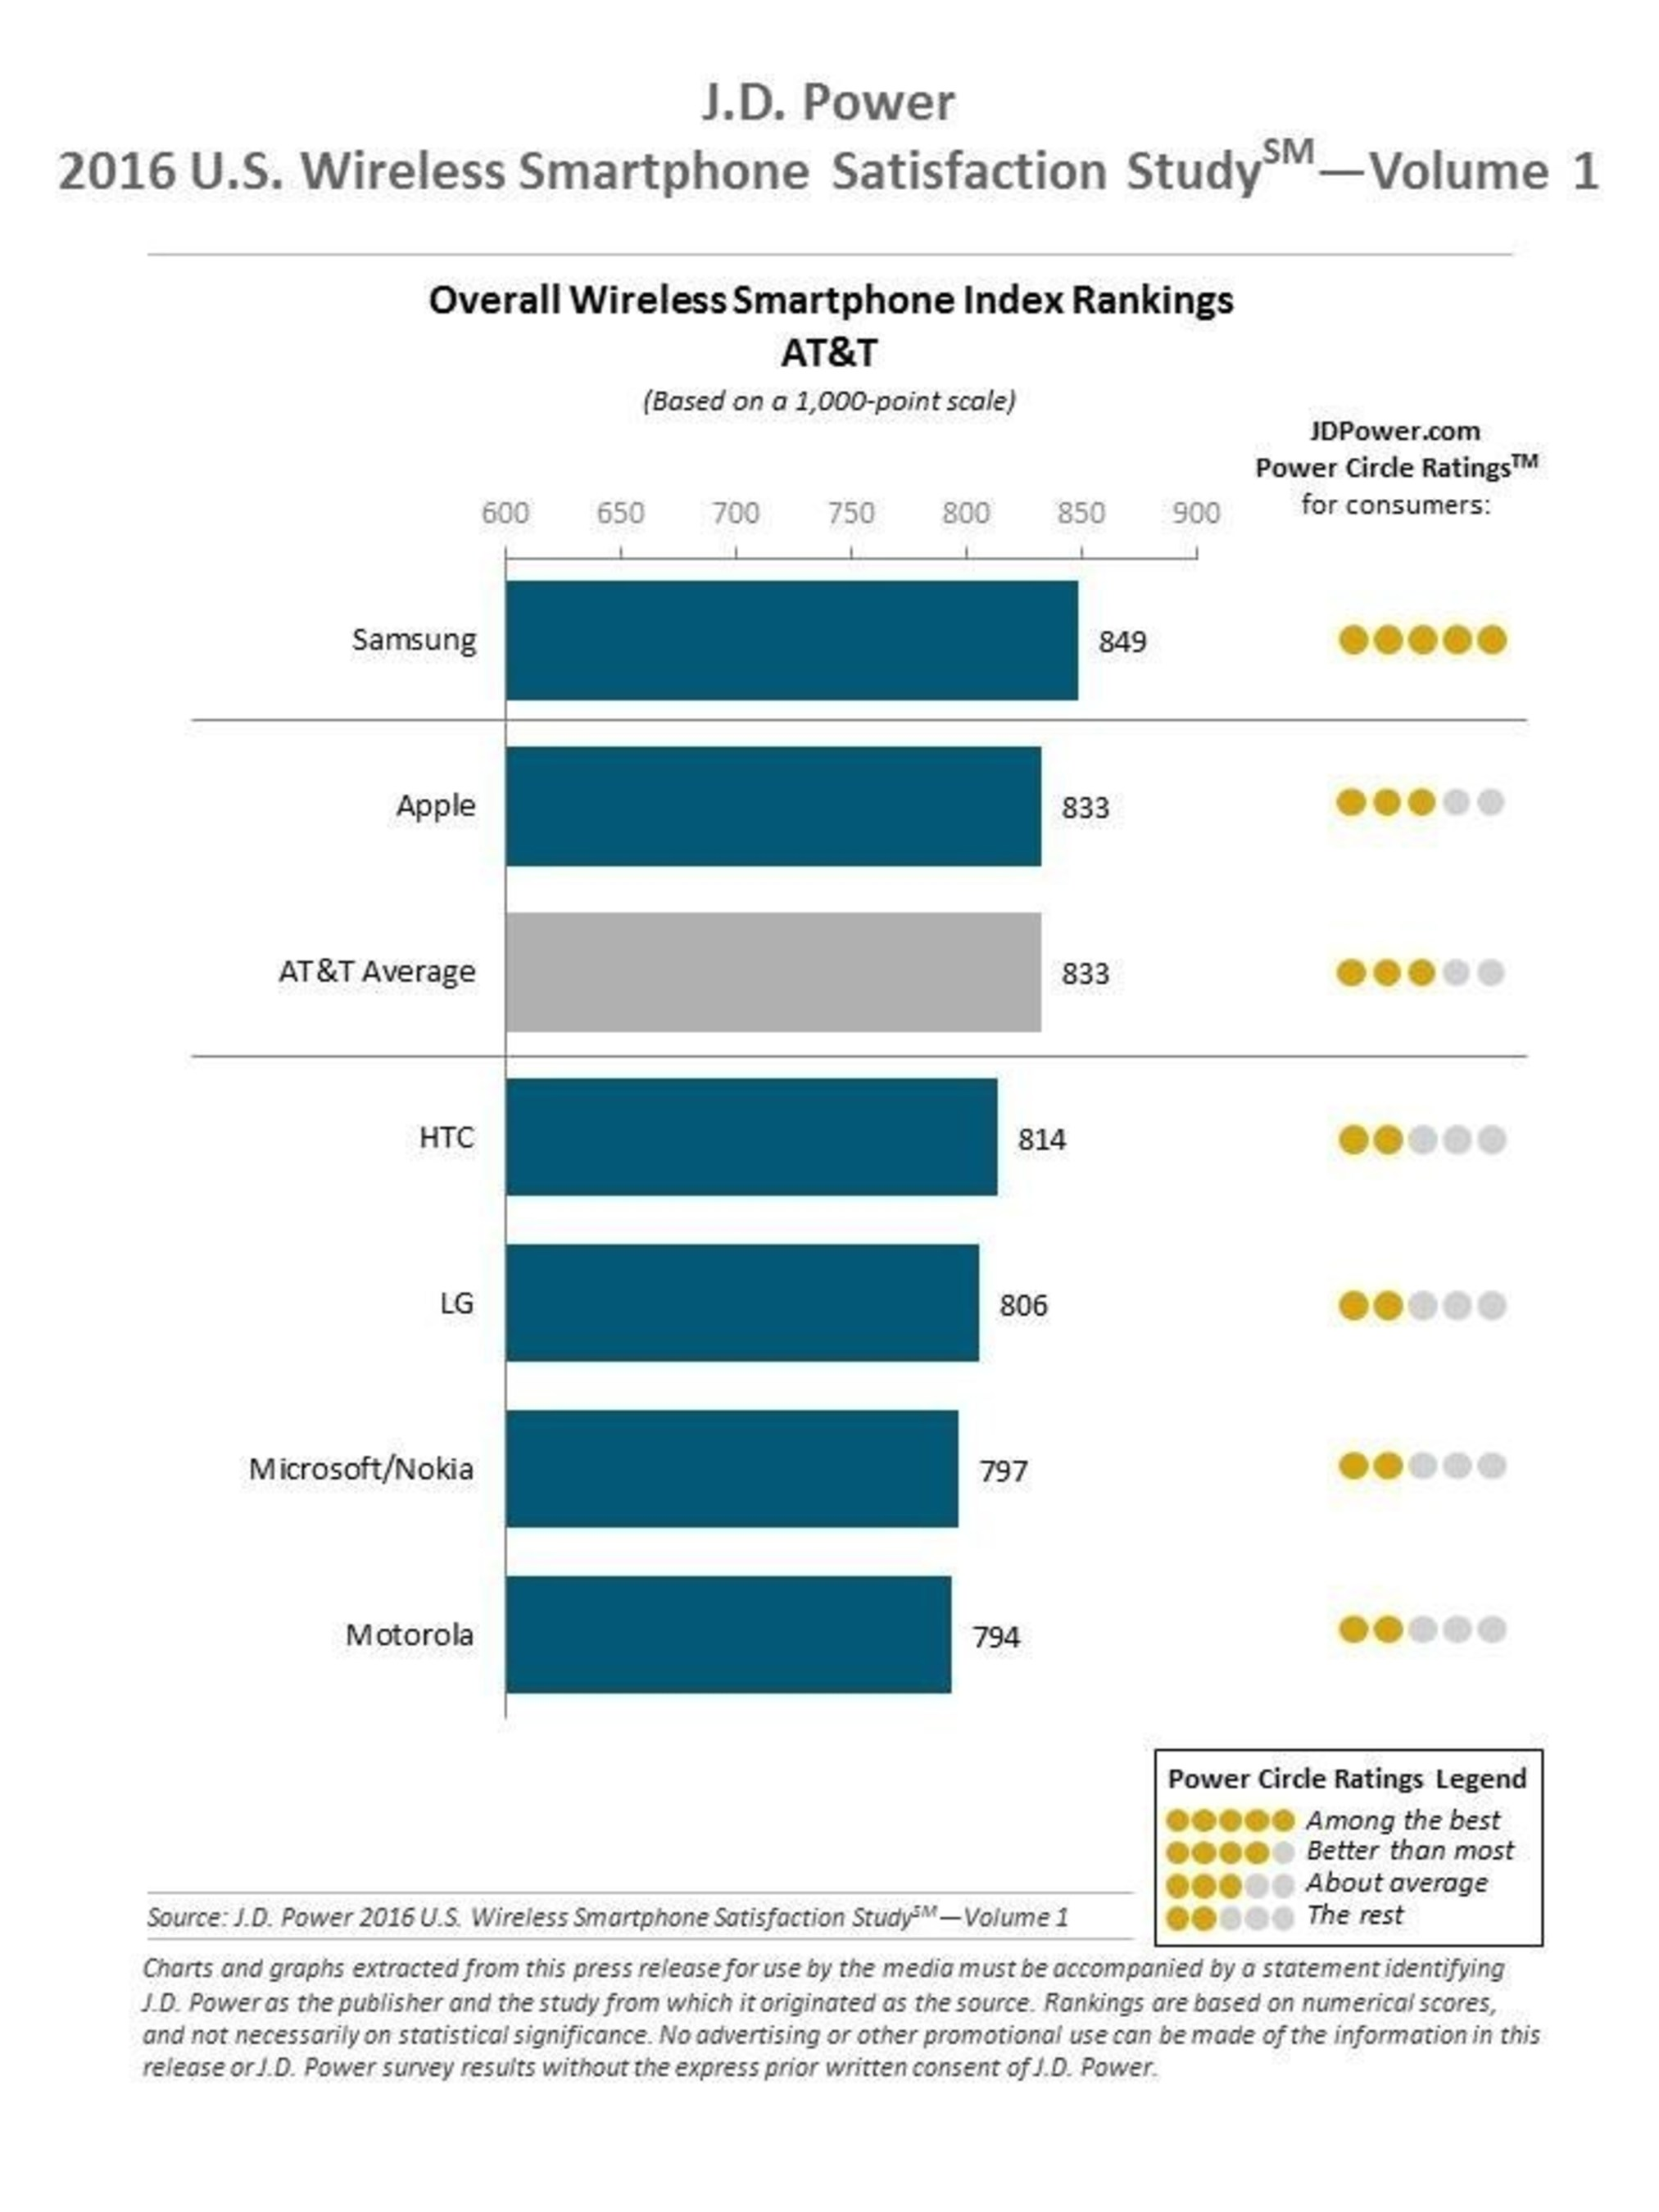 2016 J.D. Power Wireless Smartphone Ranking AT&T